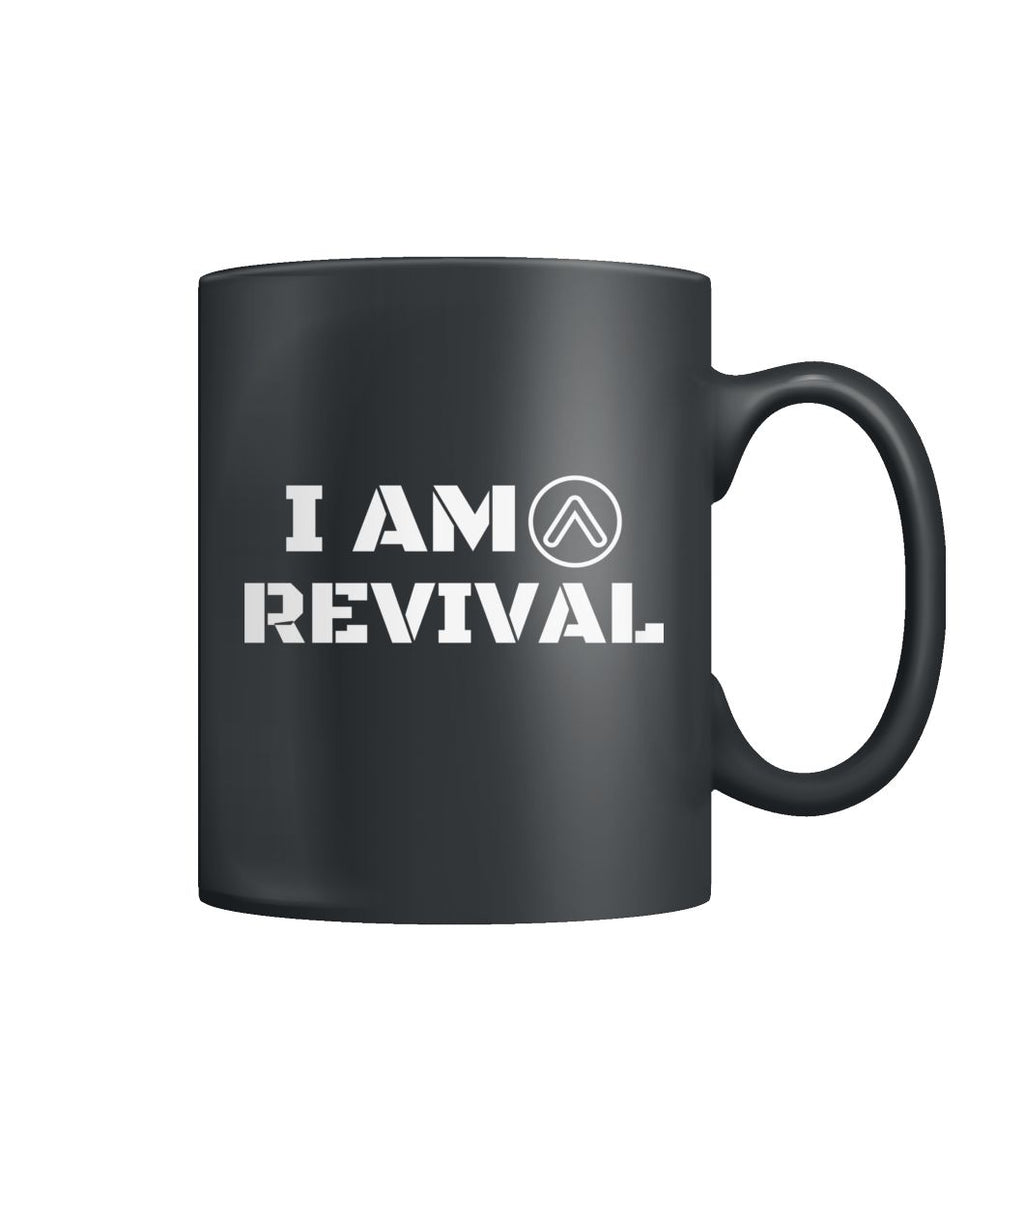 I Am Revival Mug Color Coffee Mug